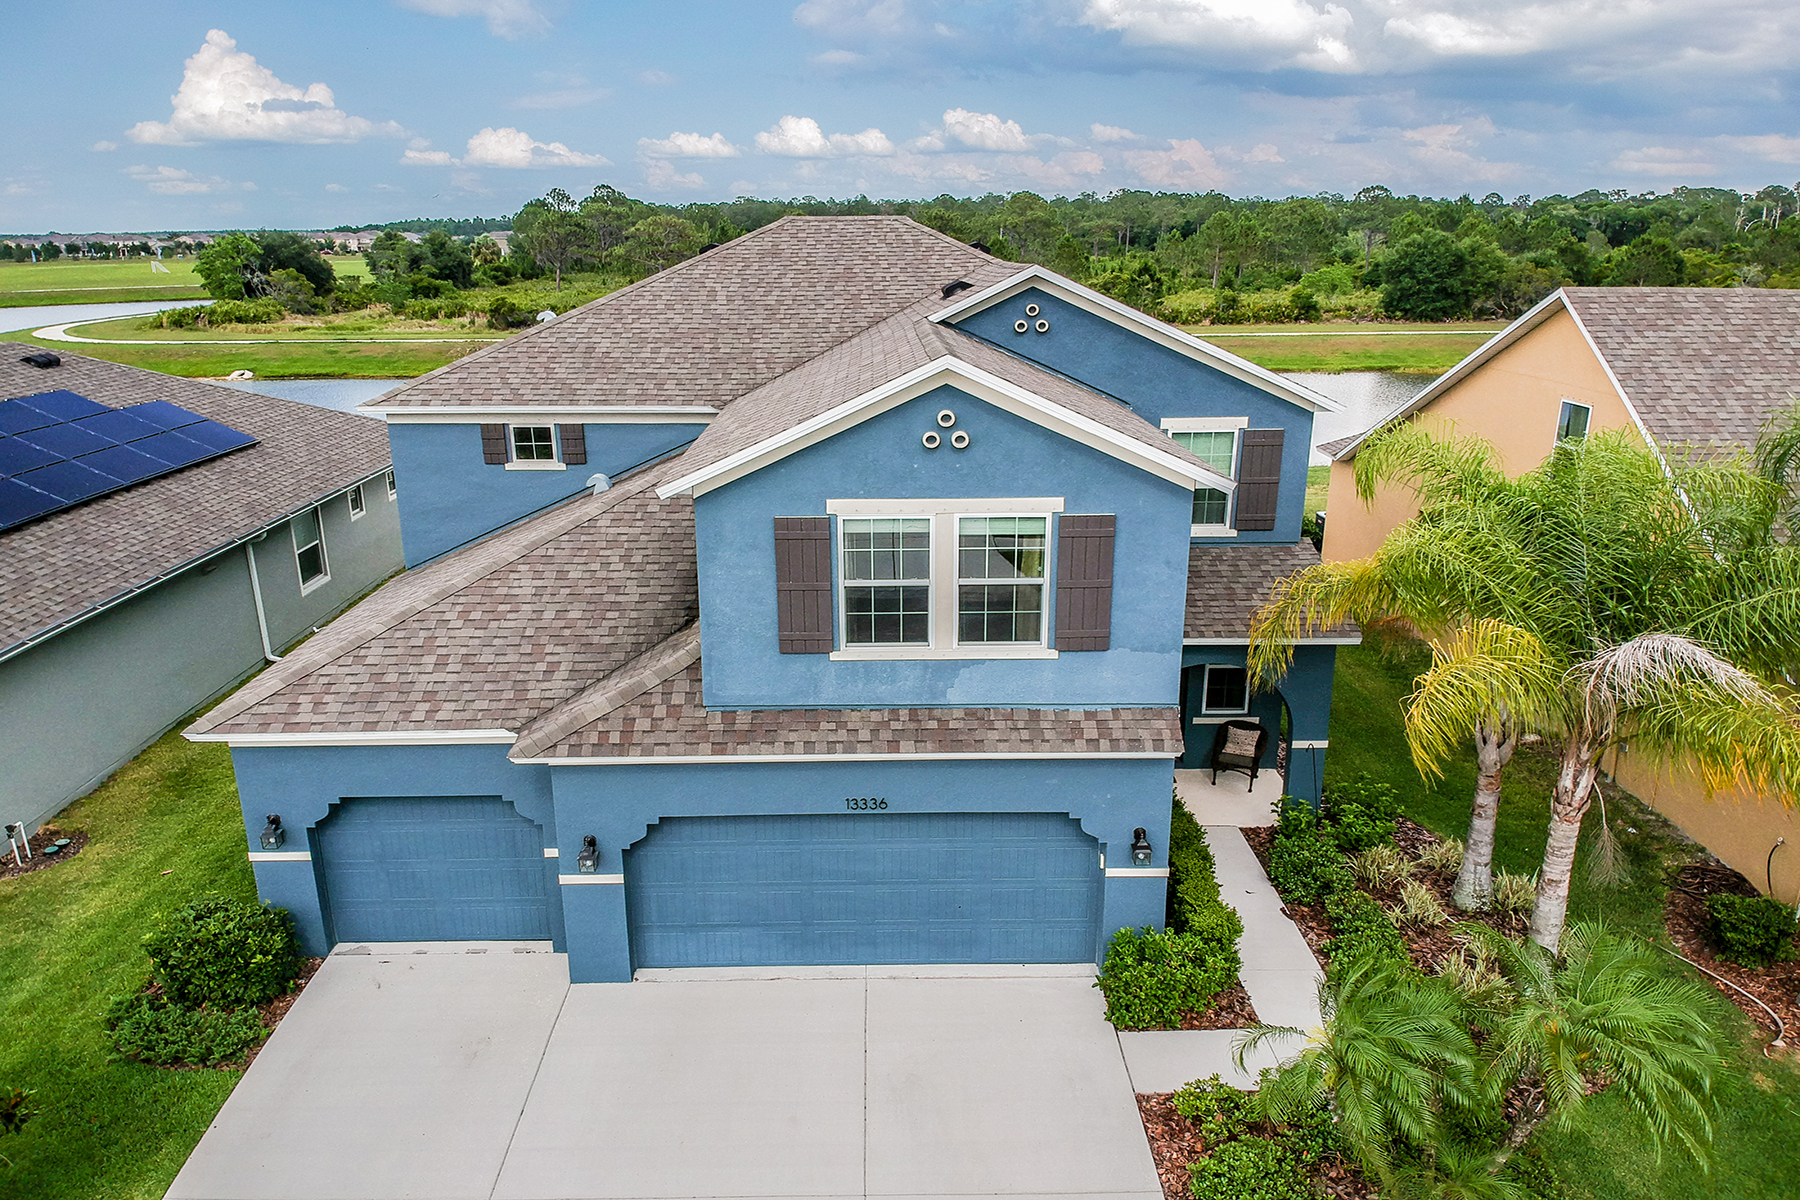 single family homes for Active at RIVERVIEW 13336 Palmera Vista Dr Riverview, Florida 33579 United States